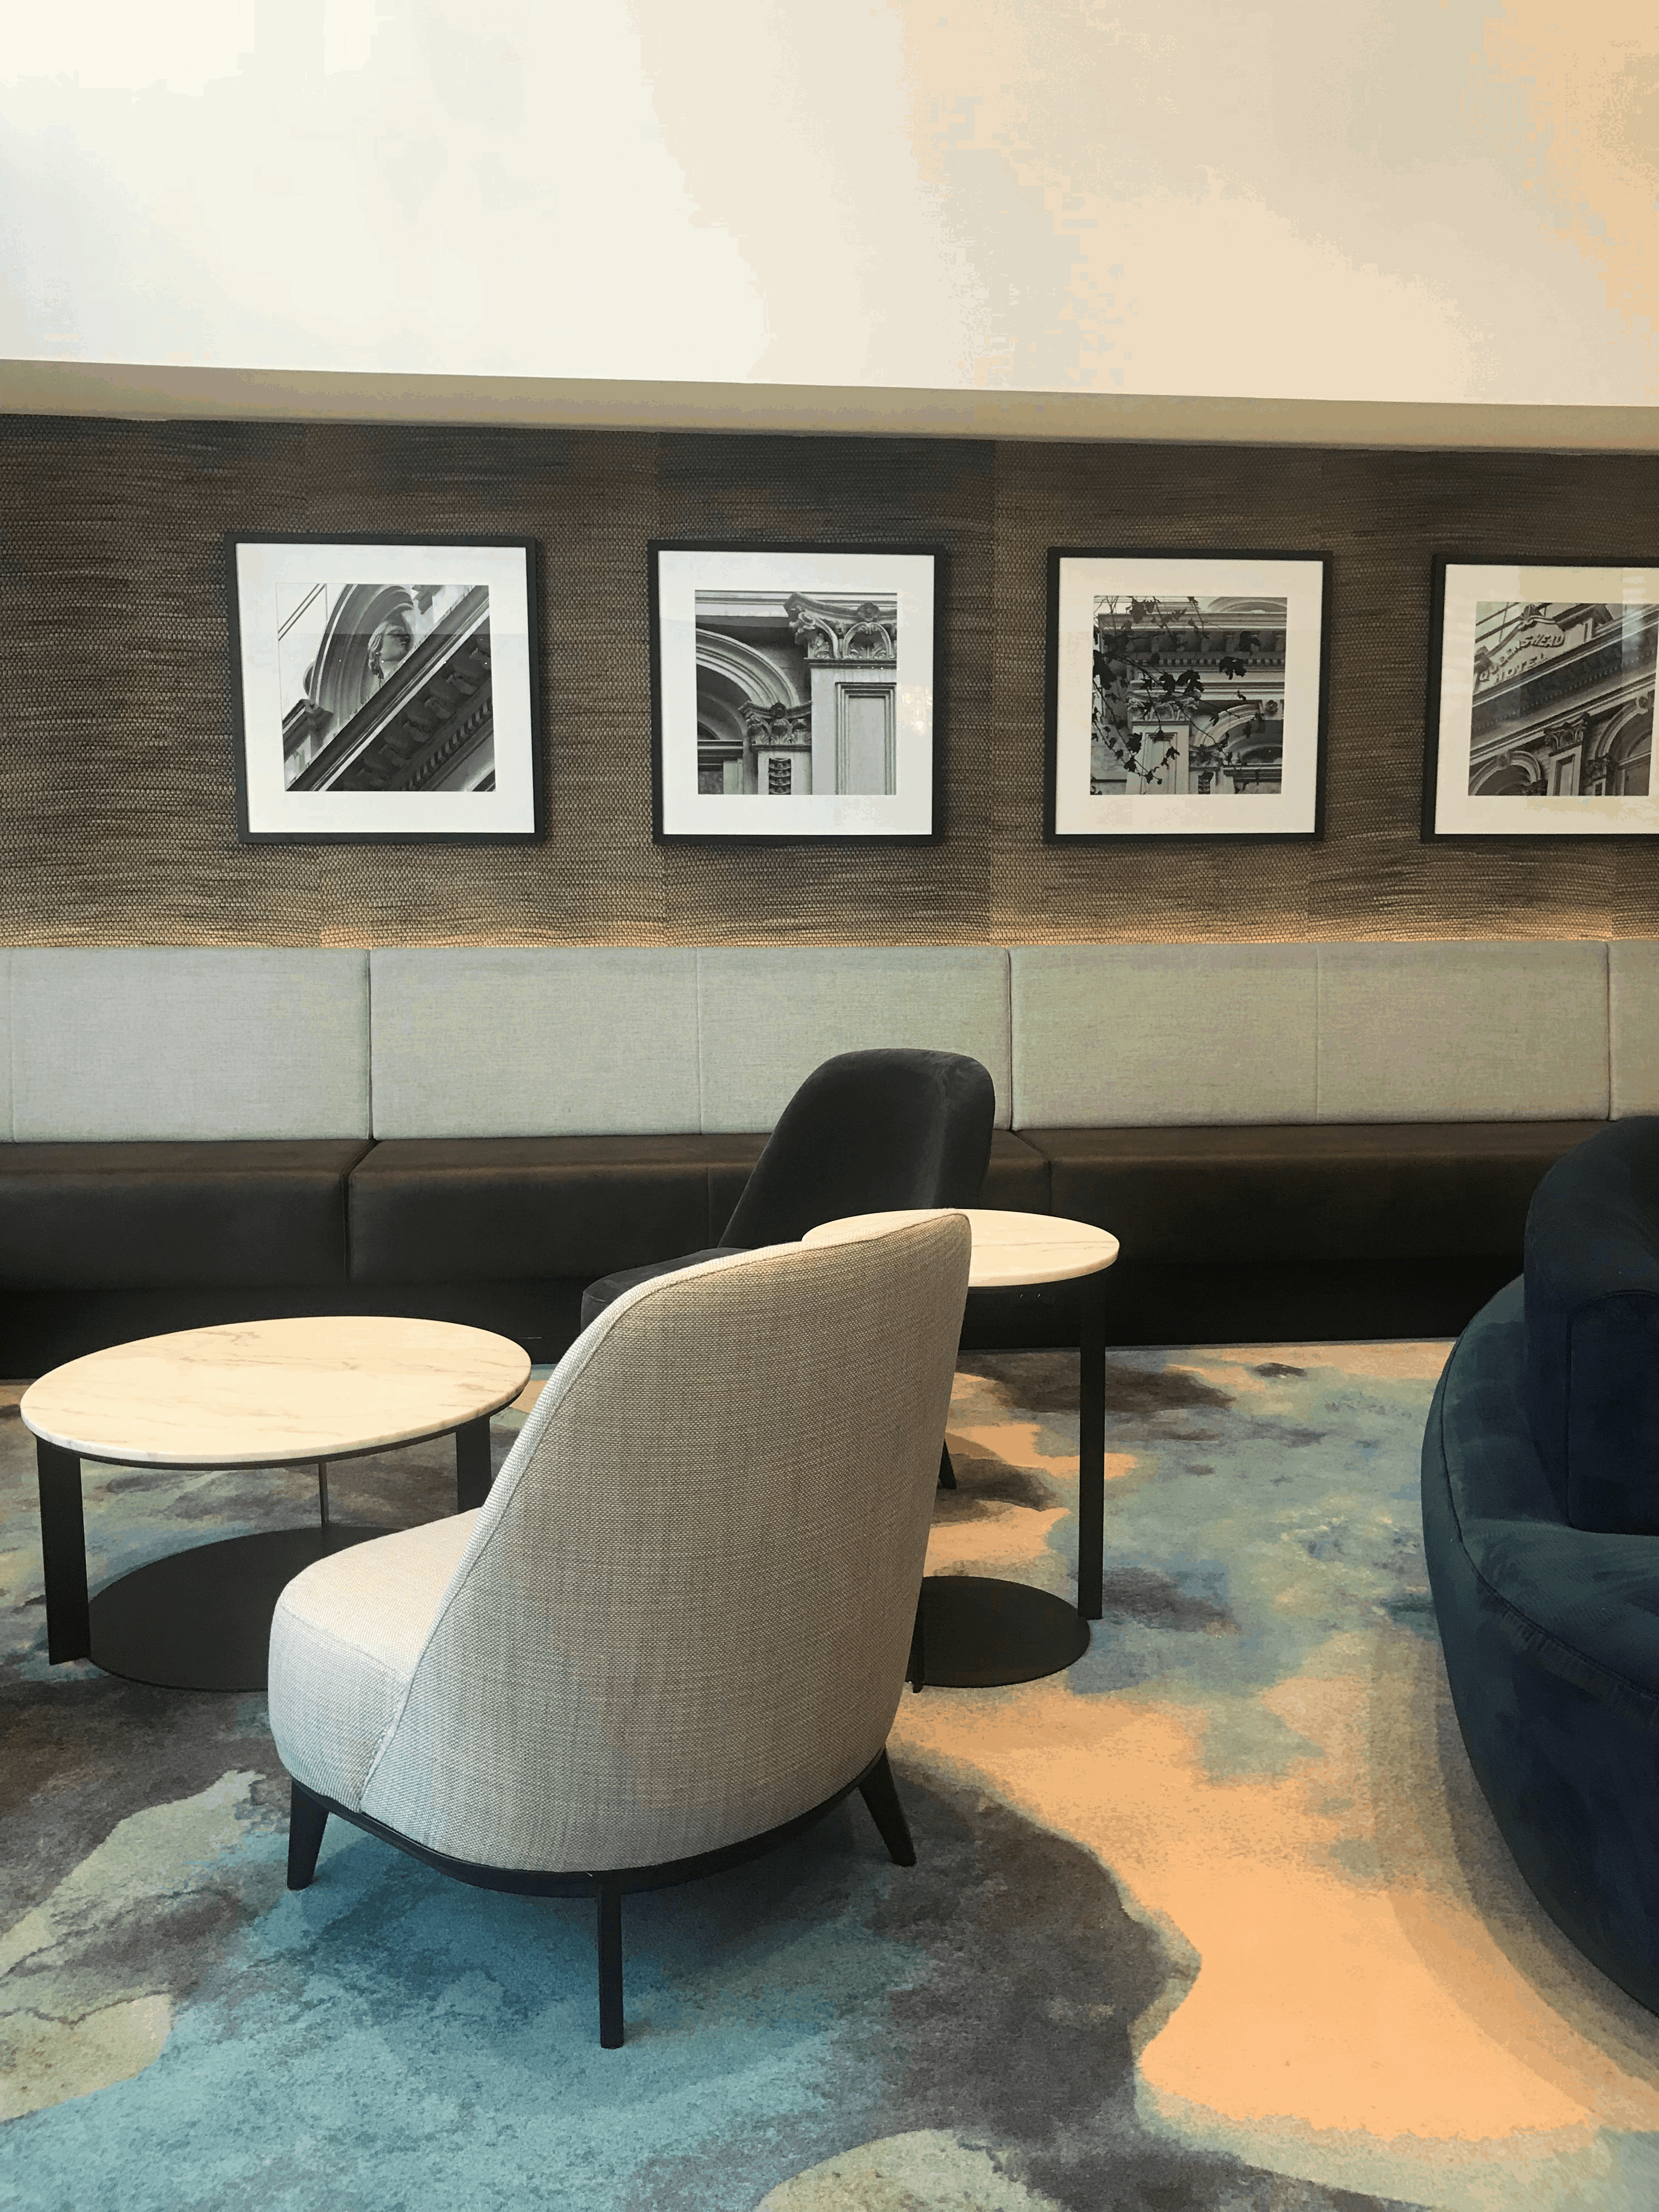 Sheraton Four Points hotel in Auckland foyer seating design with black and white photographs on the walls